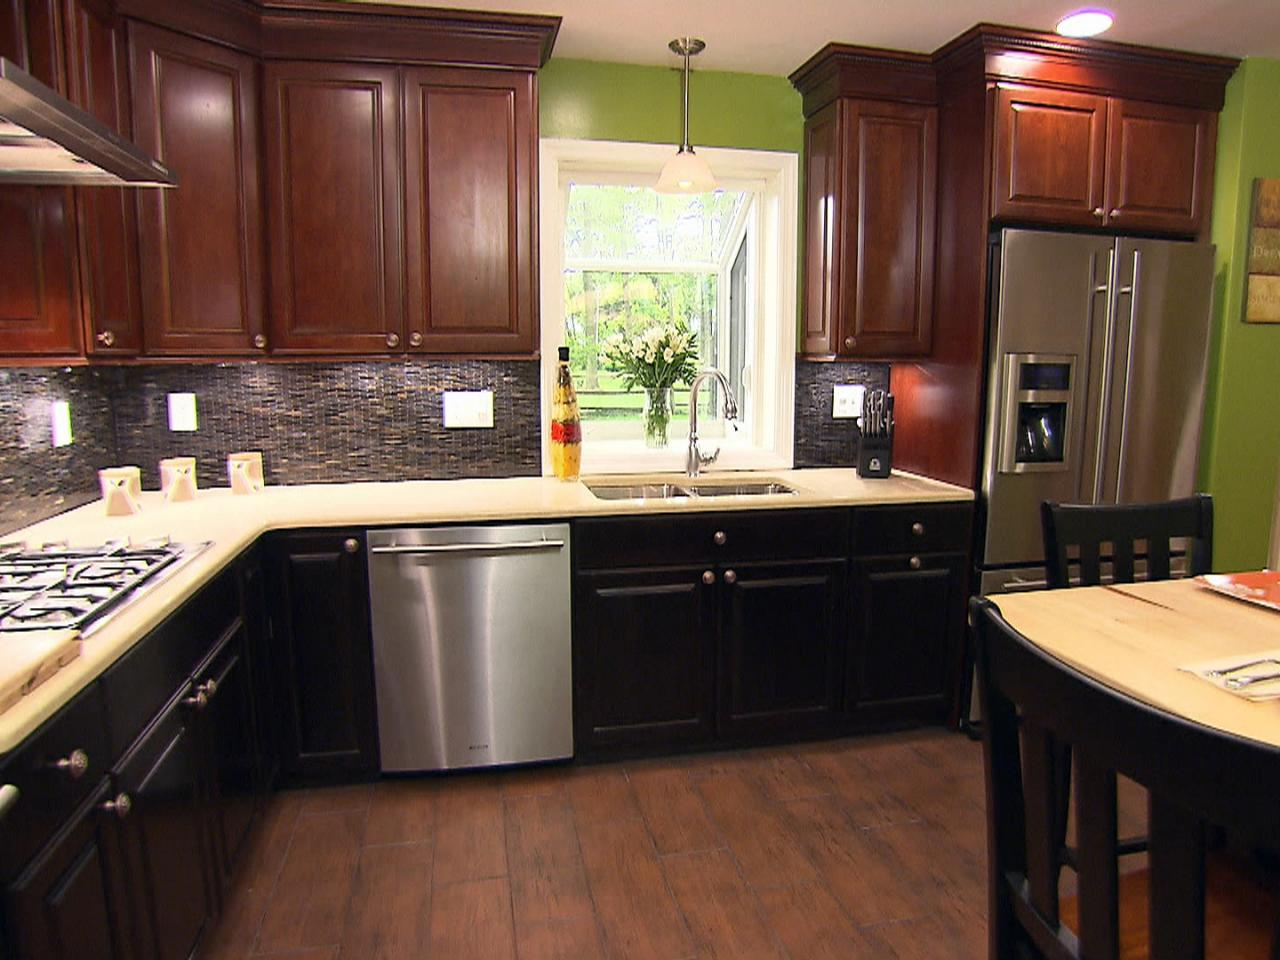 ordinary Designs Of Kitchen Cabinets With Photos #3: Related To: Kitchen Kitchen Design Designing Kitchen Cabinets ...